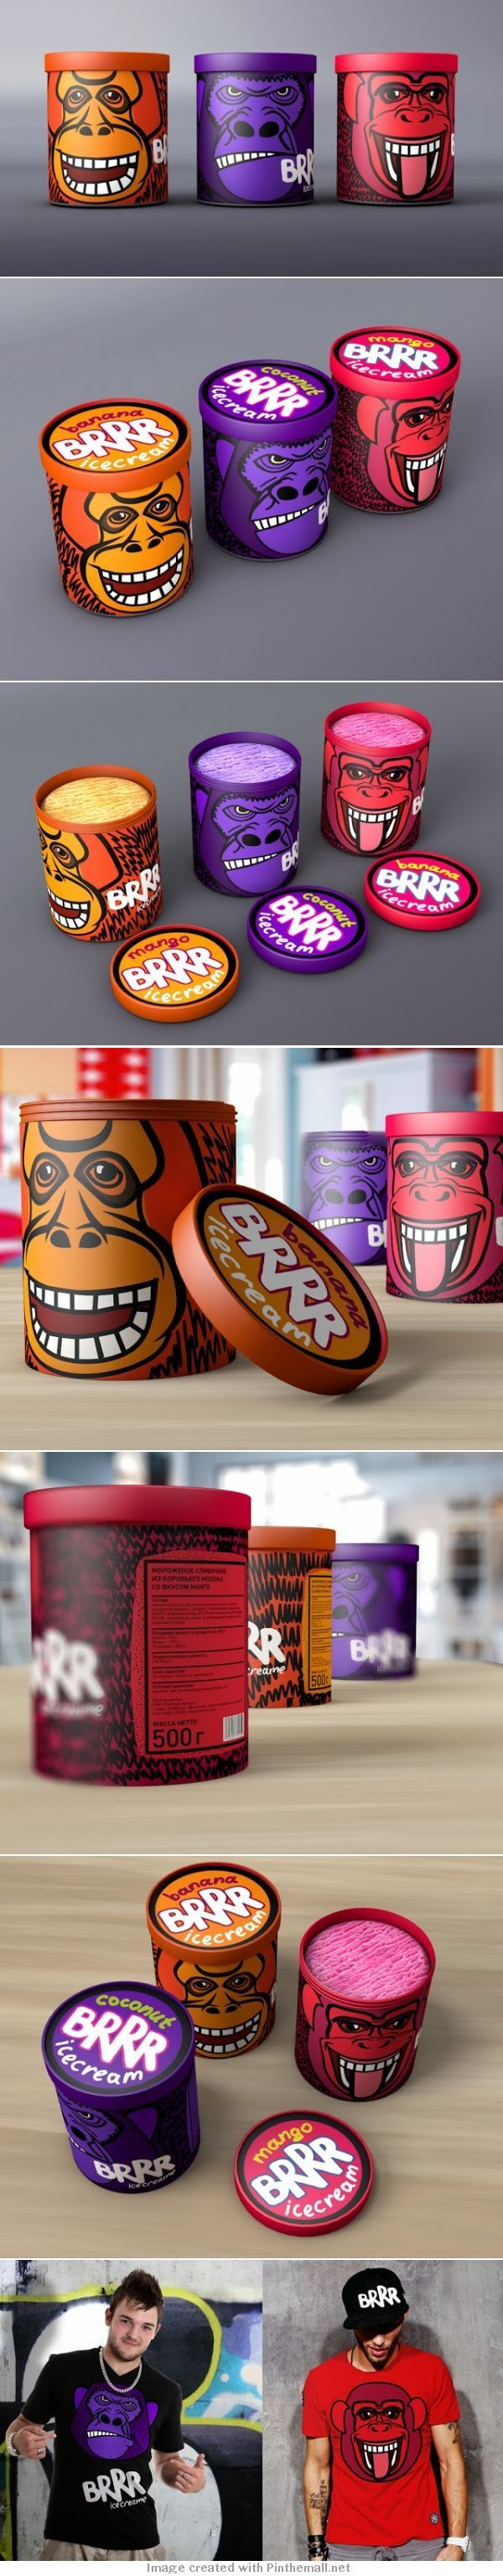 Love great packaging examples...